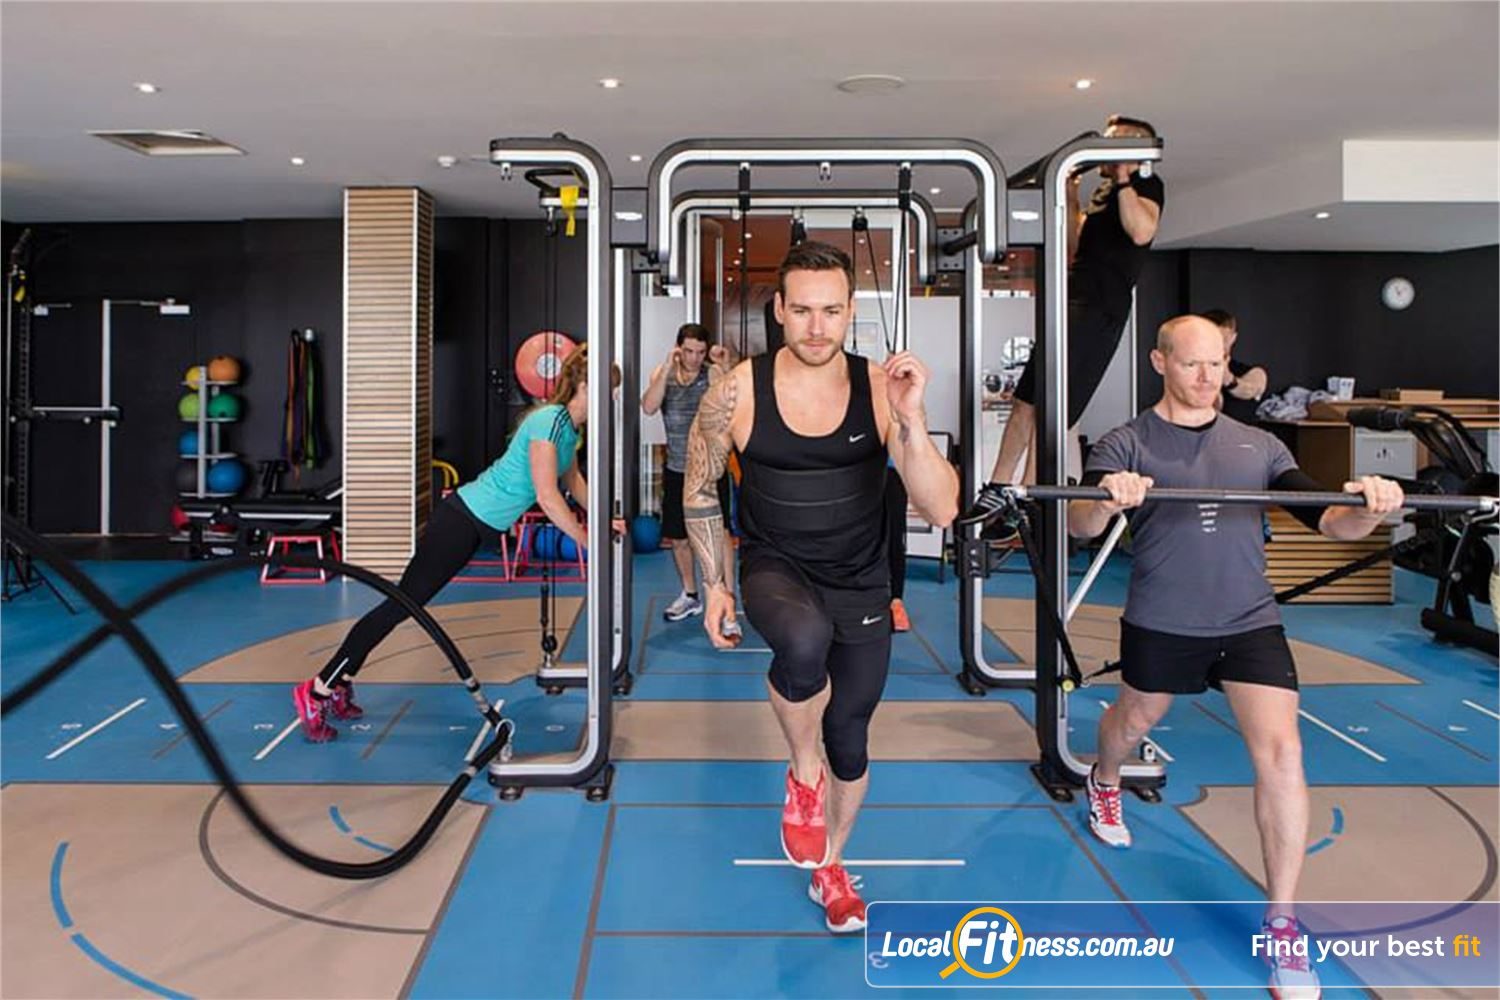 South Pacific Health Clubs Near St Kilda East Try one of our many St Kilda HIIT classes.